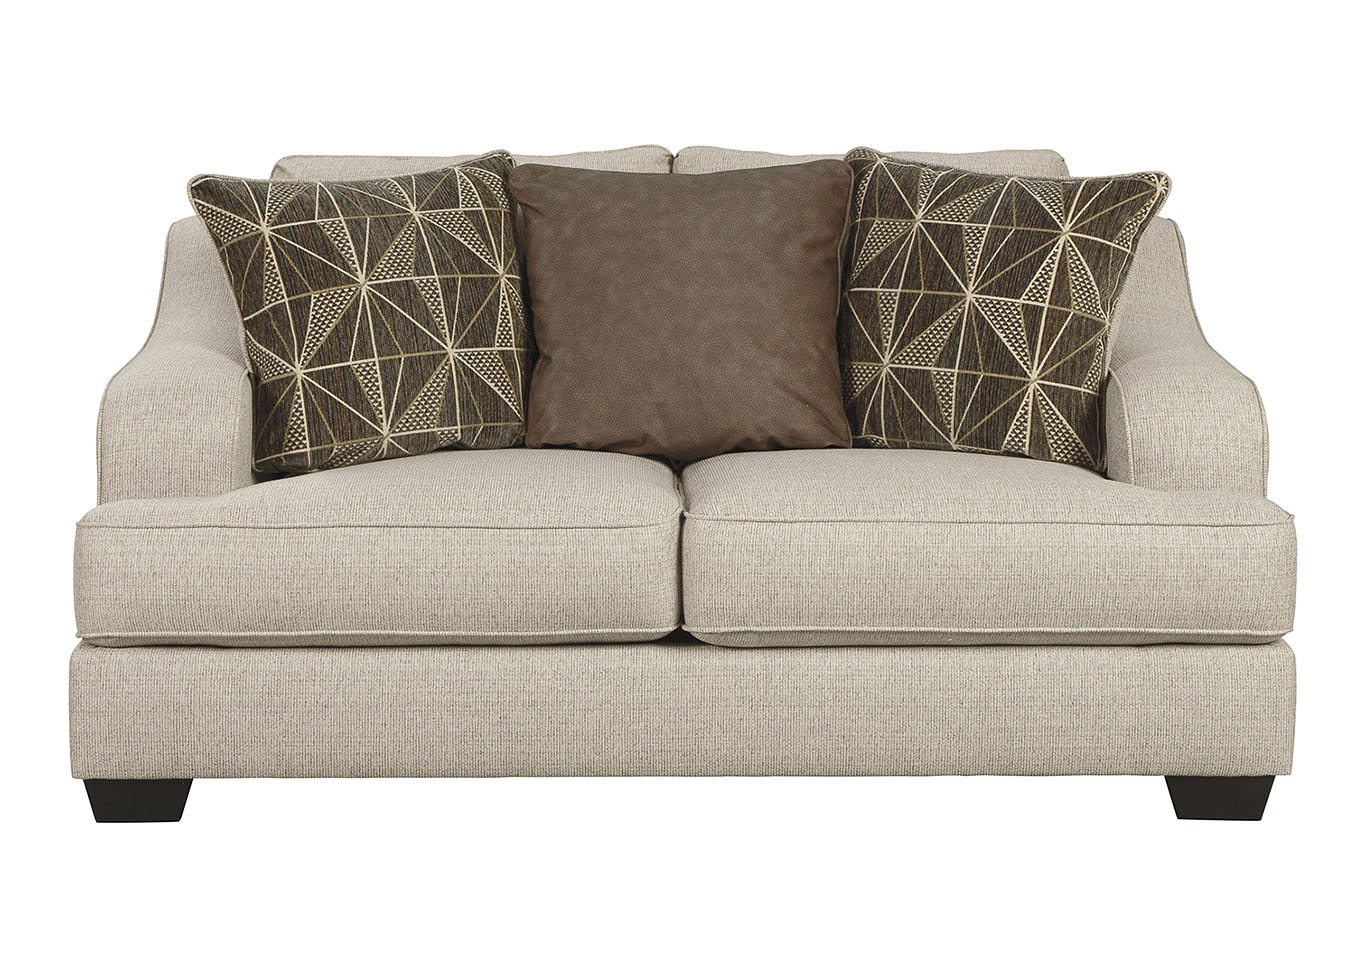 Marciana Bisque Loveseat,Benchcraft